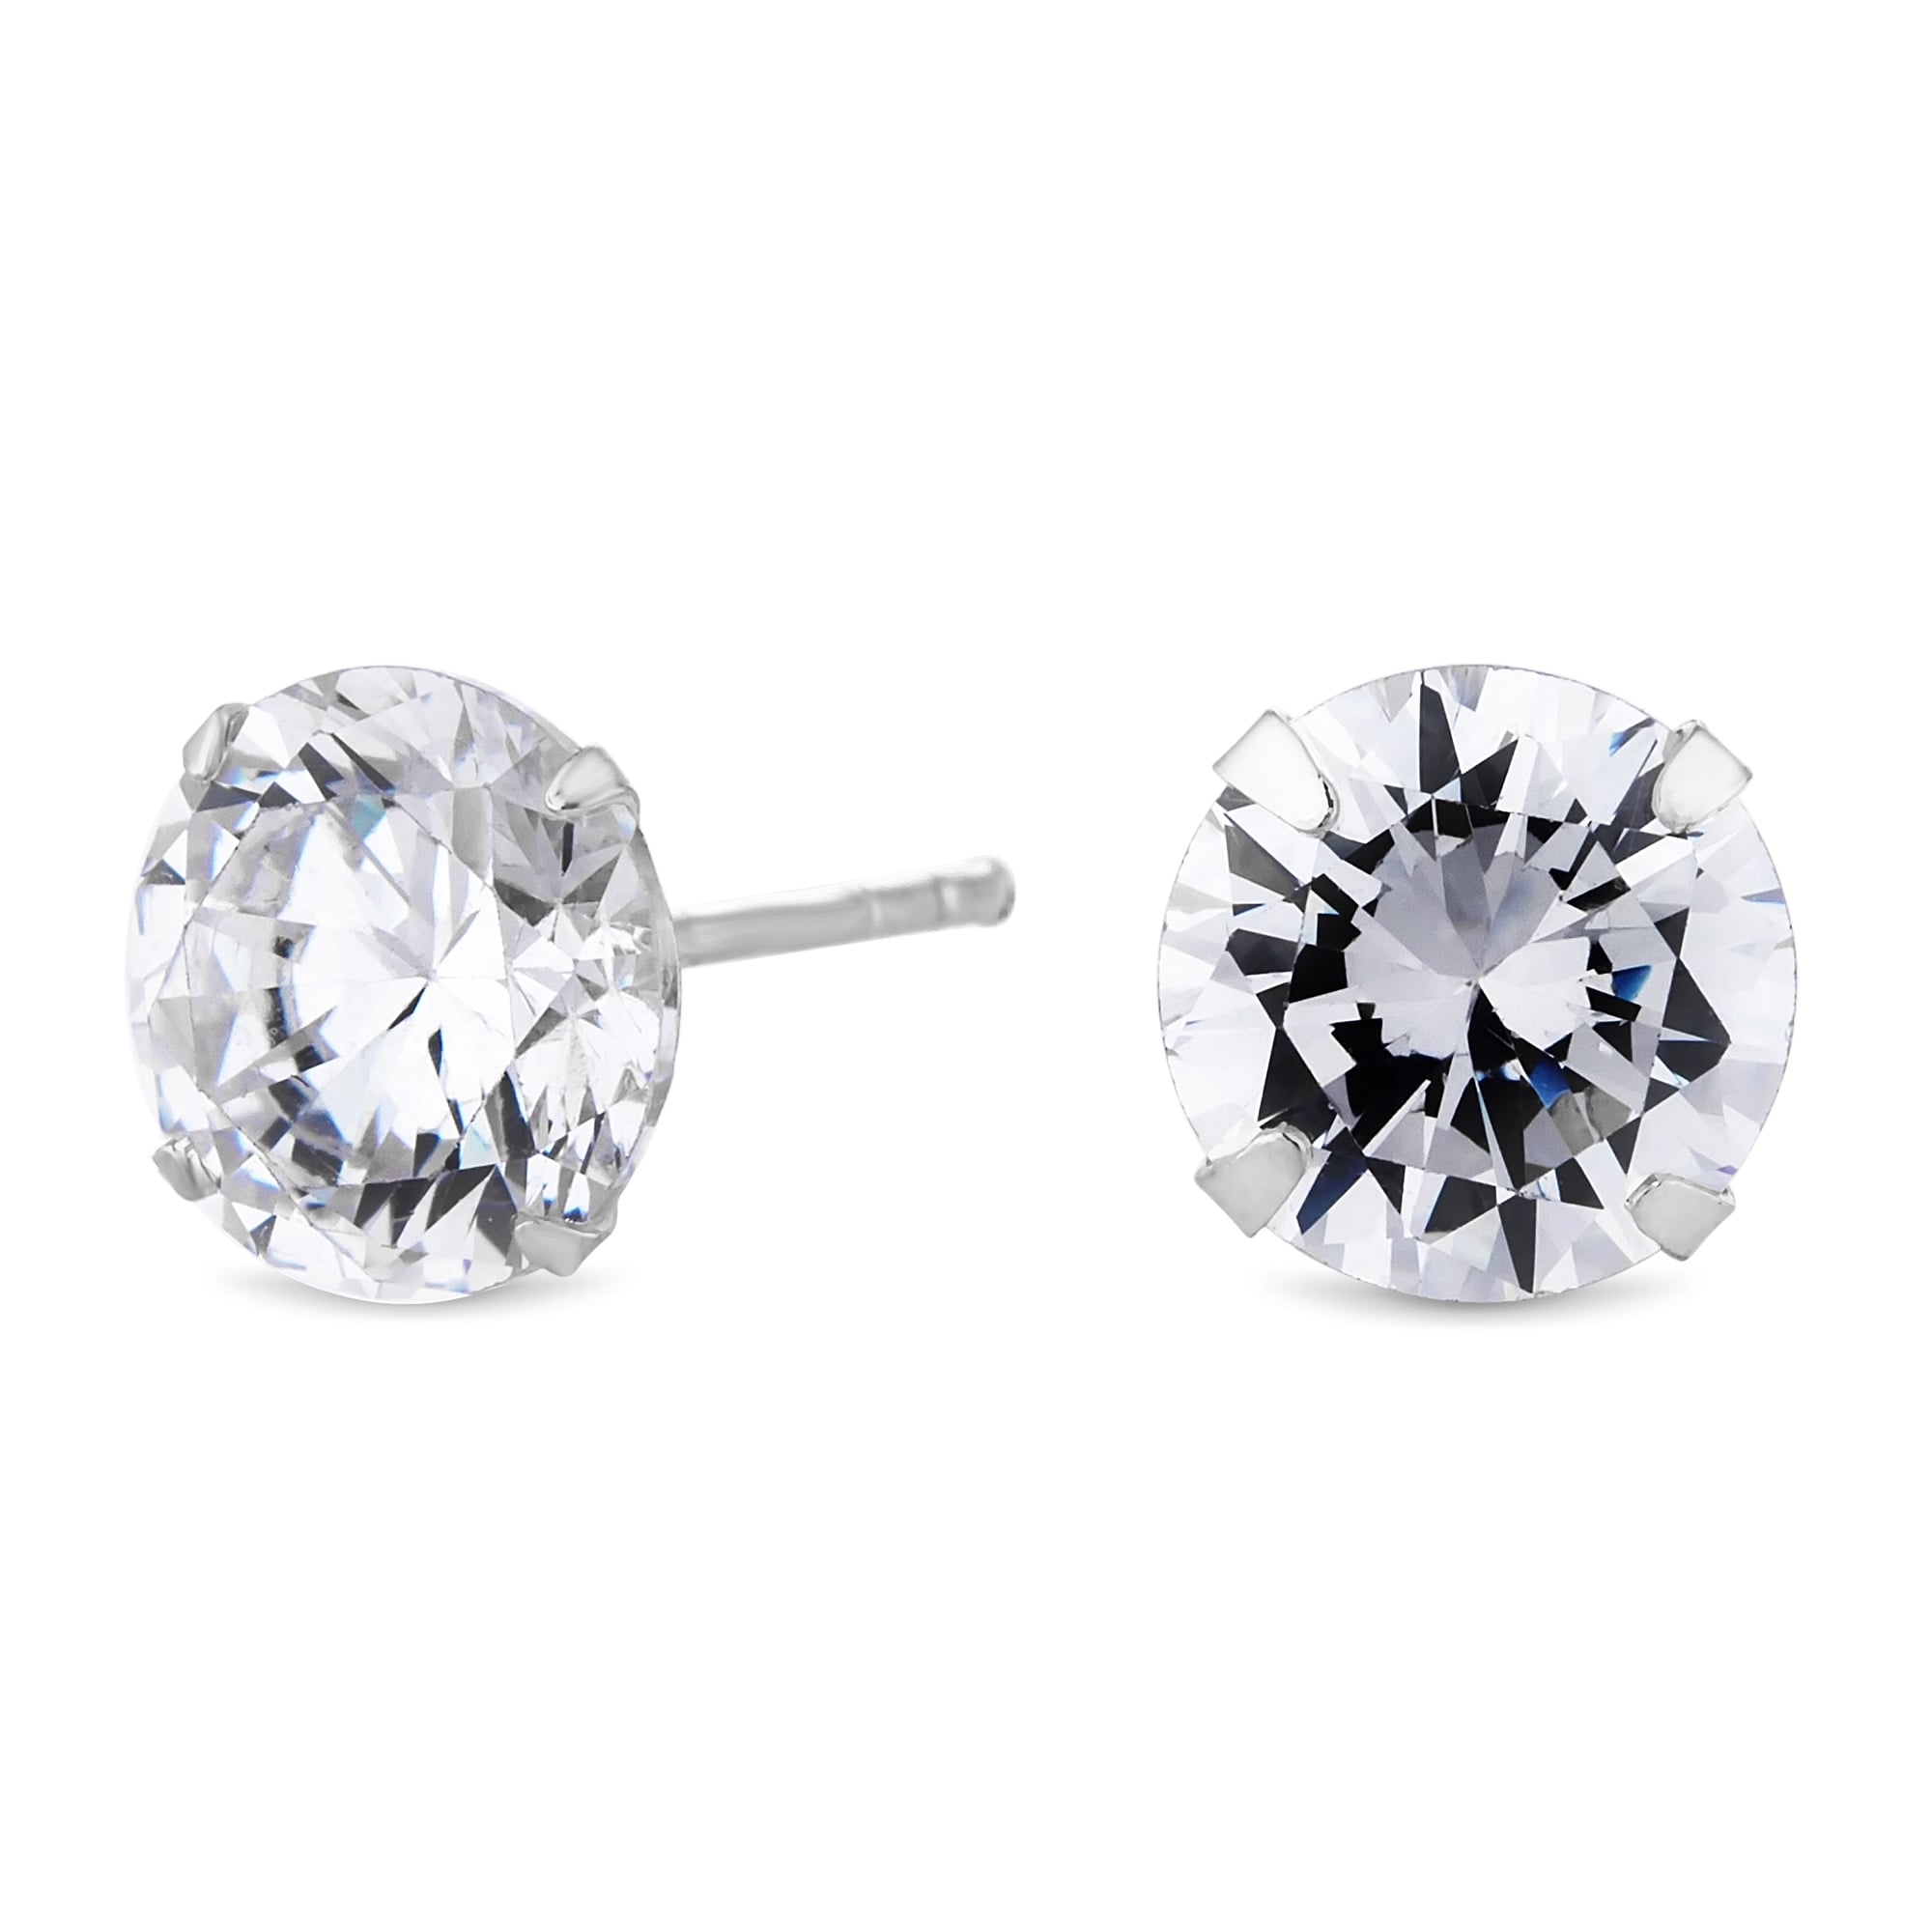 pack final earring cubic zirconia sale stud main